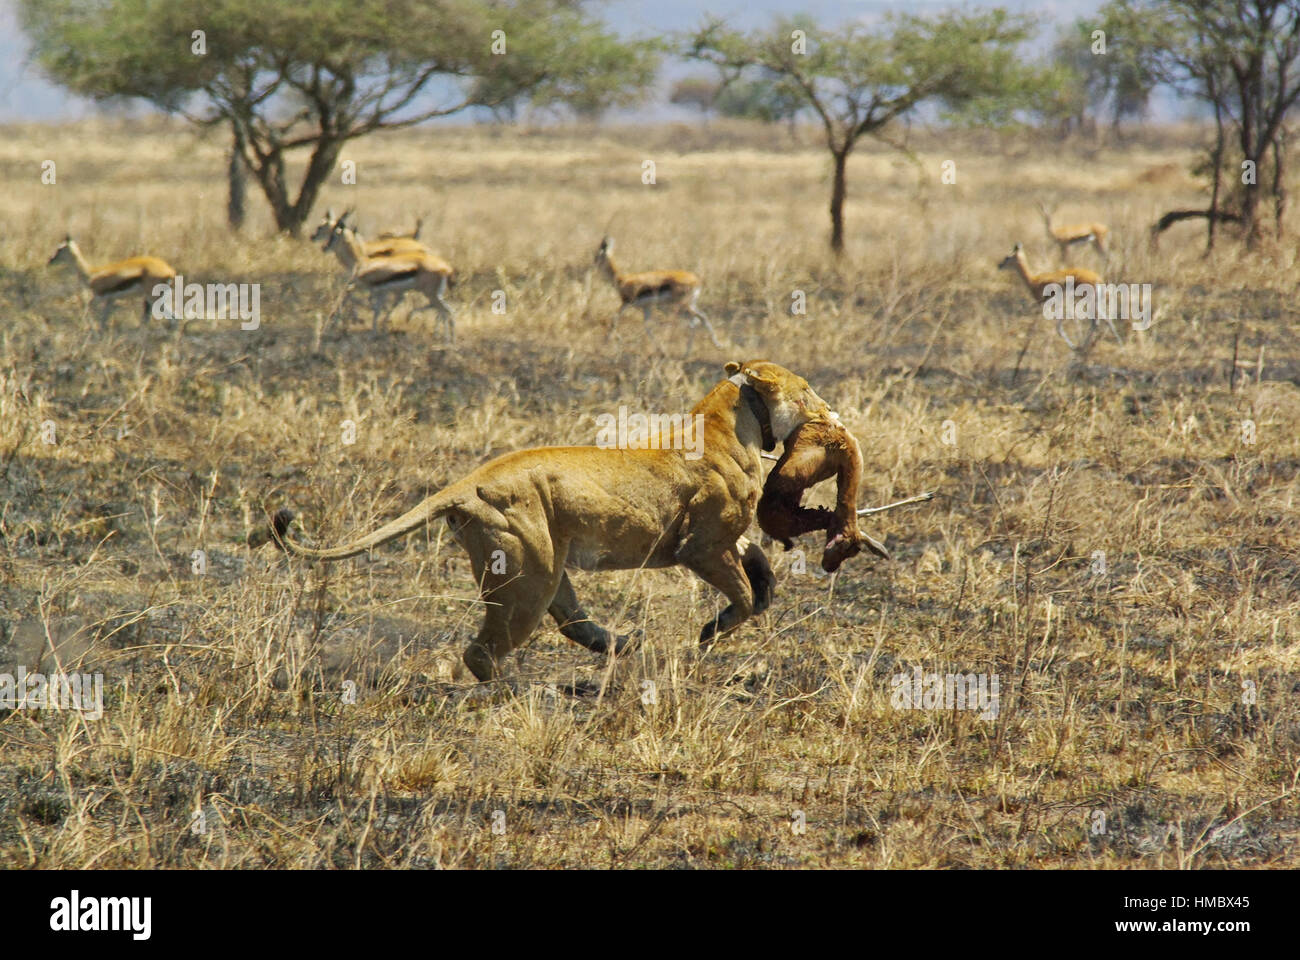 Image result for lion with prey in mouth